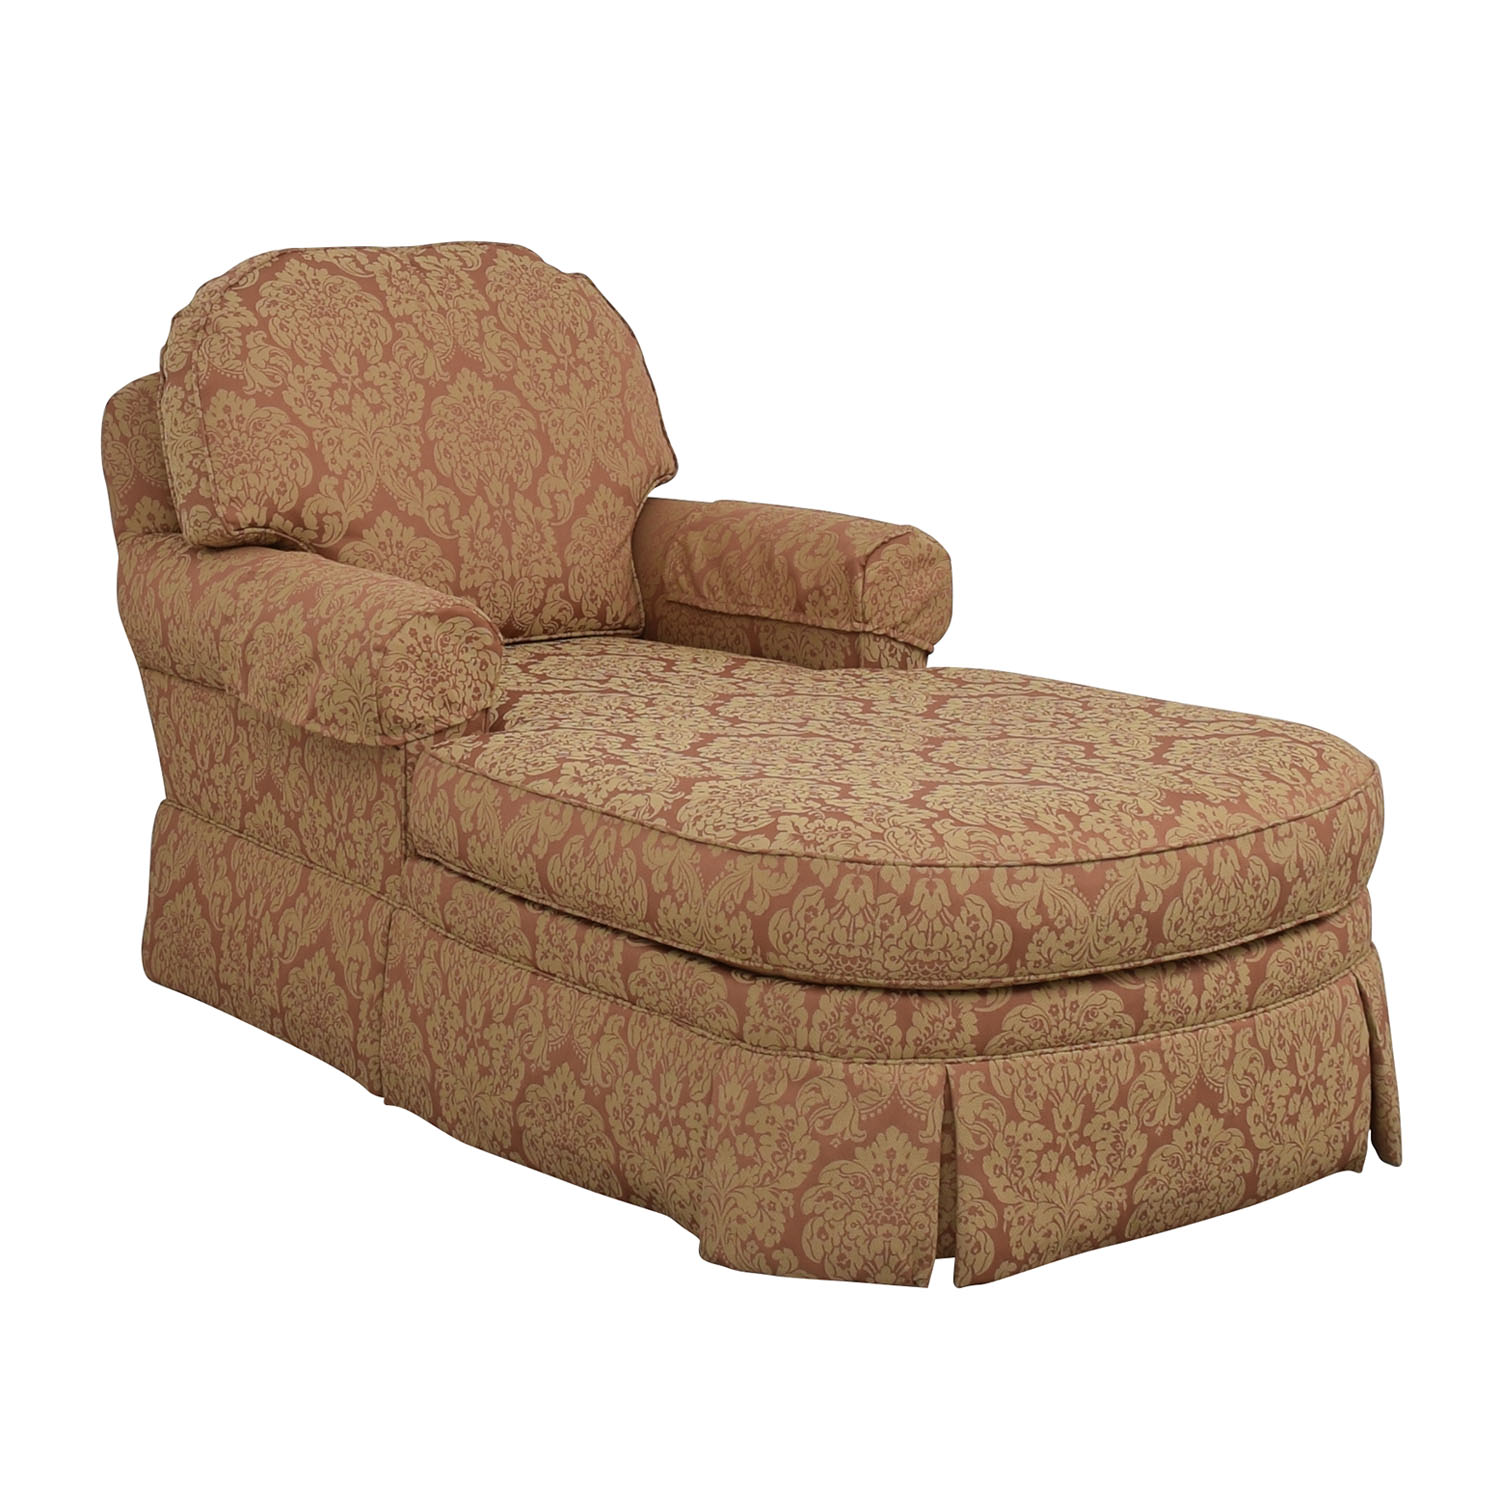 shop Ethan Allen Rose and Tan Chaise Lounge Ethan Allen Chaises